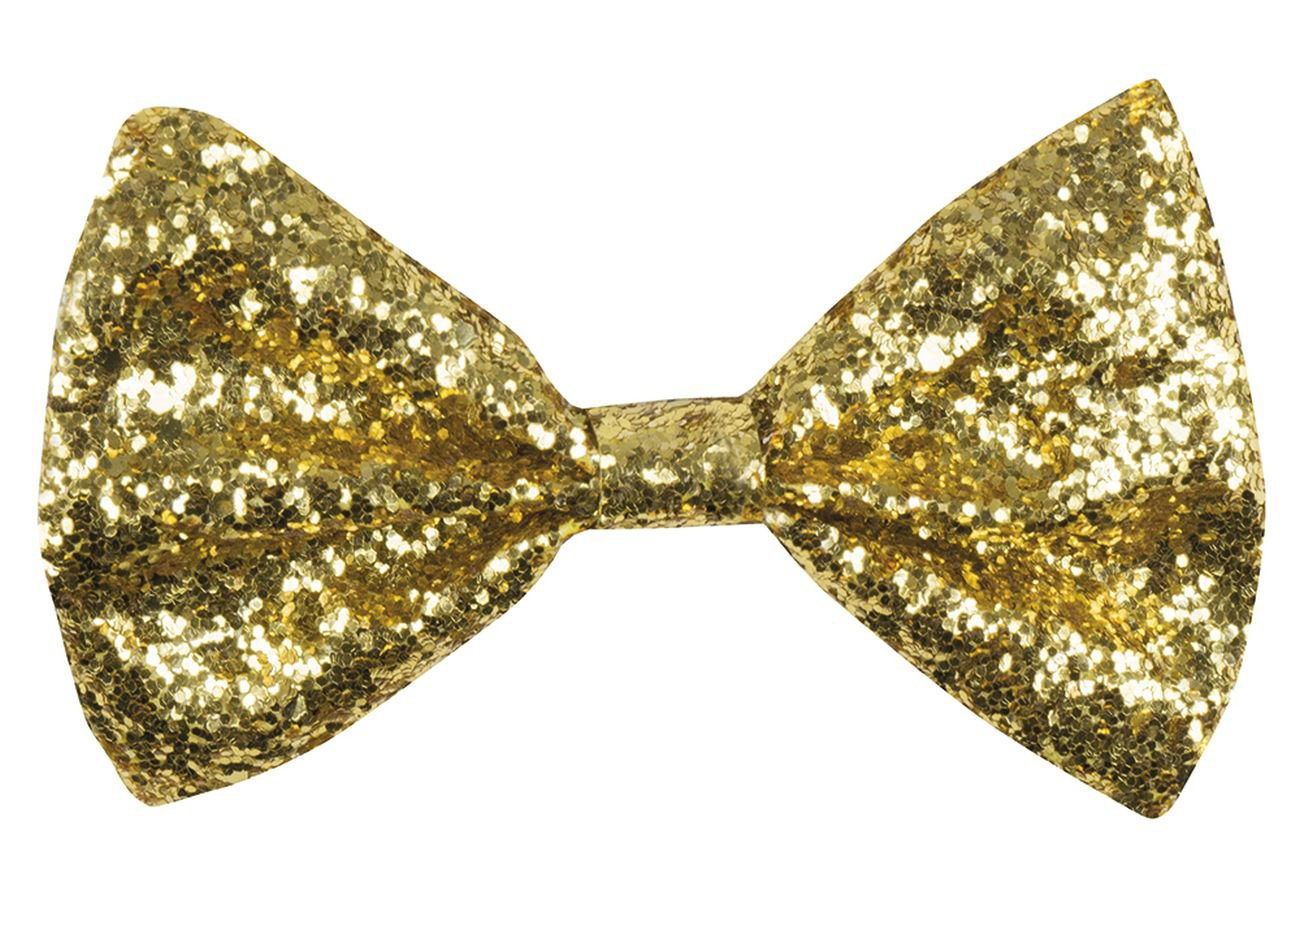 Boland 53110 Bow Tie Glitter, Gold, One Size